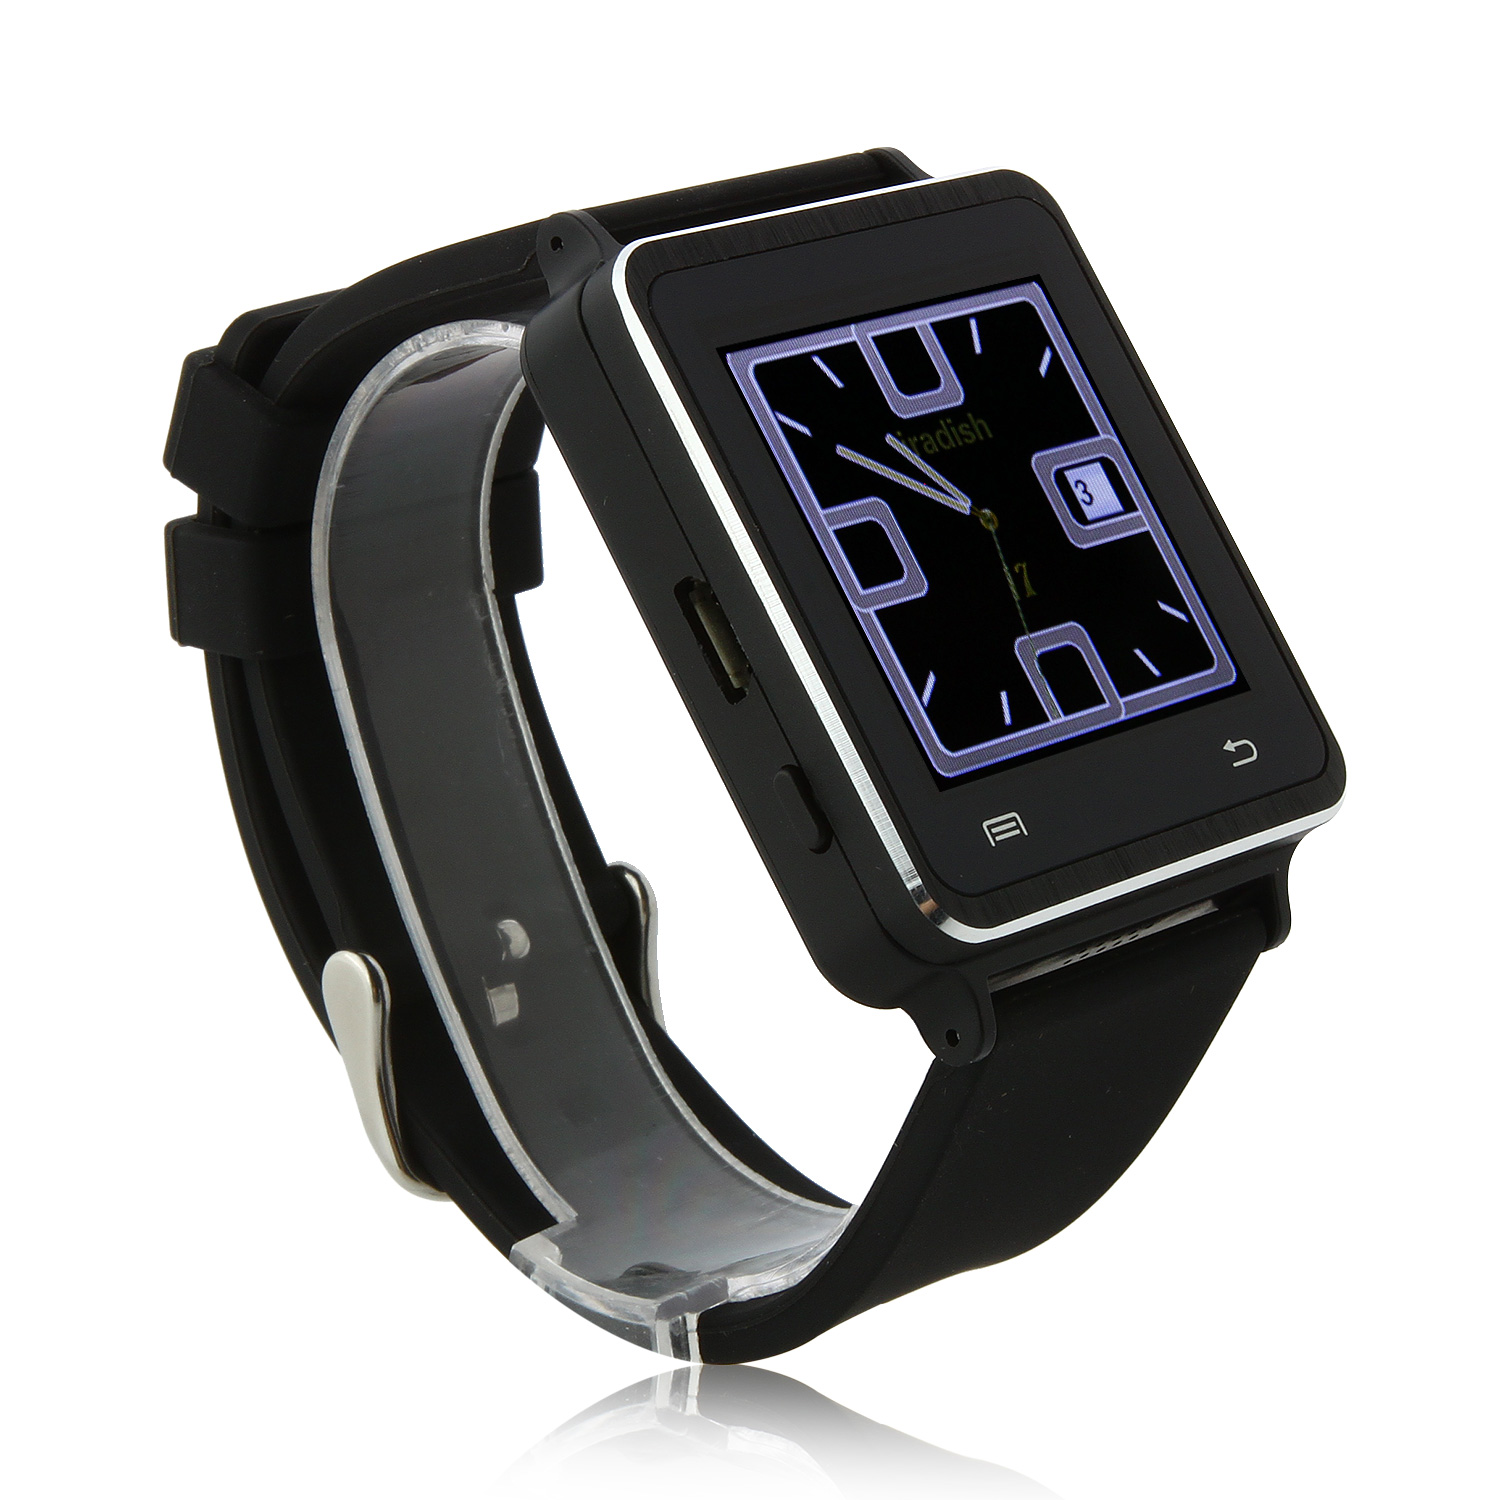 Iradish I7 Smart Bluetooth Watch Touch Screen for Android Devices 1.54 Inch - Black